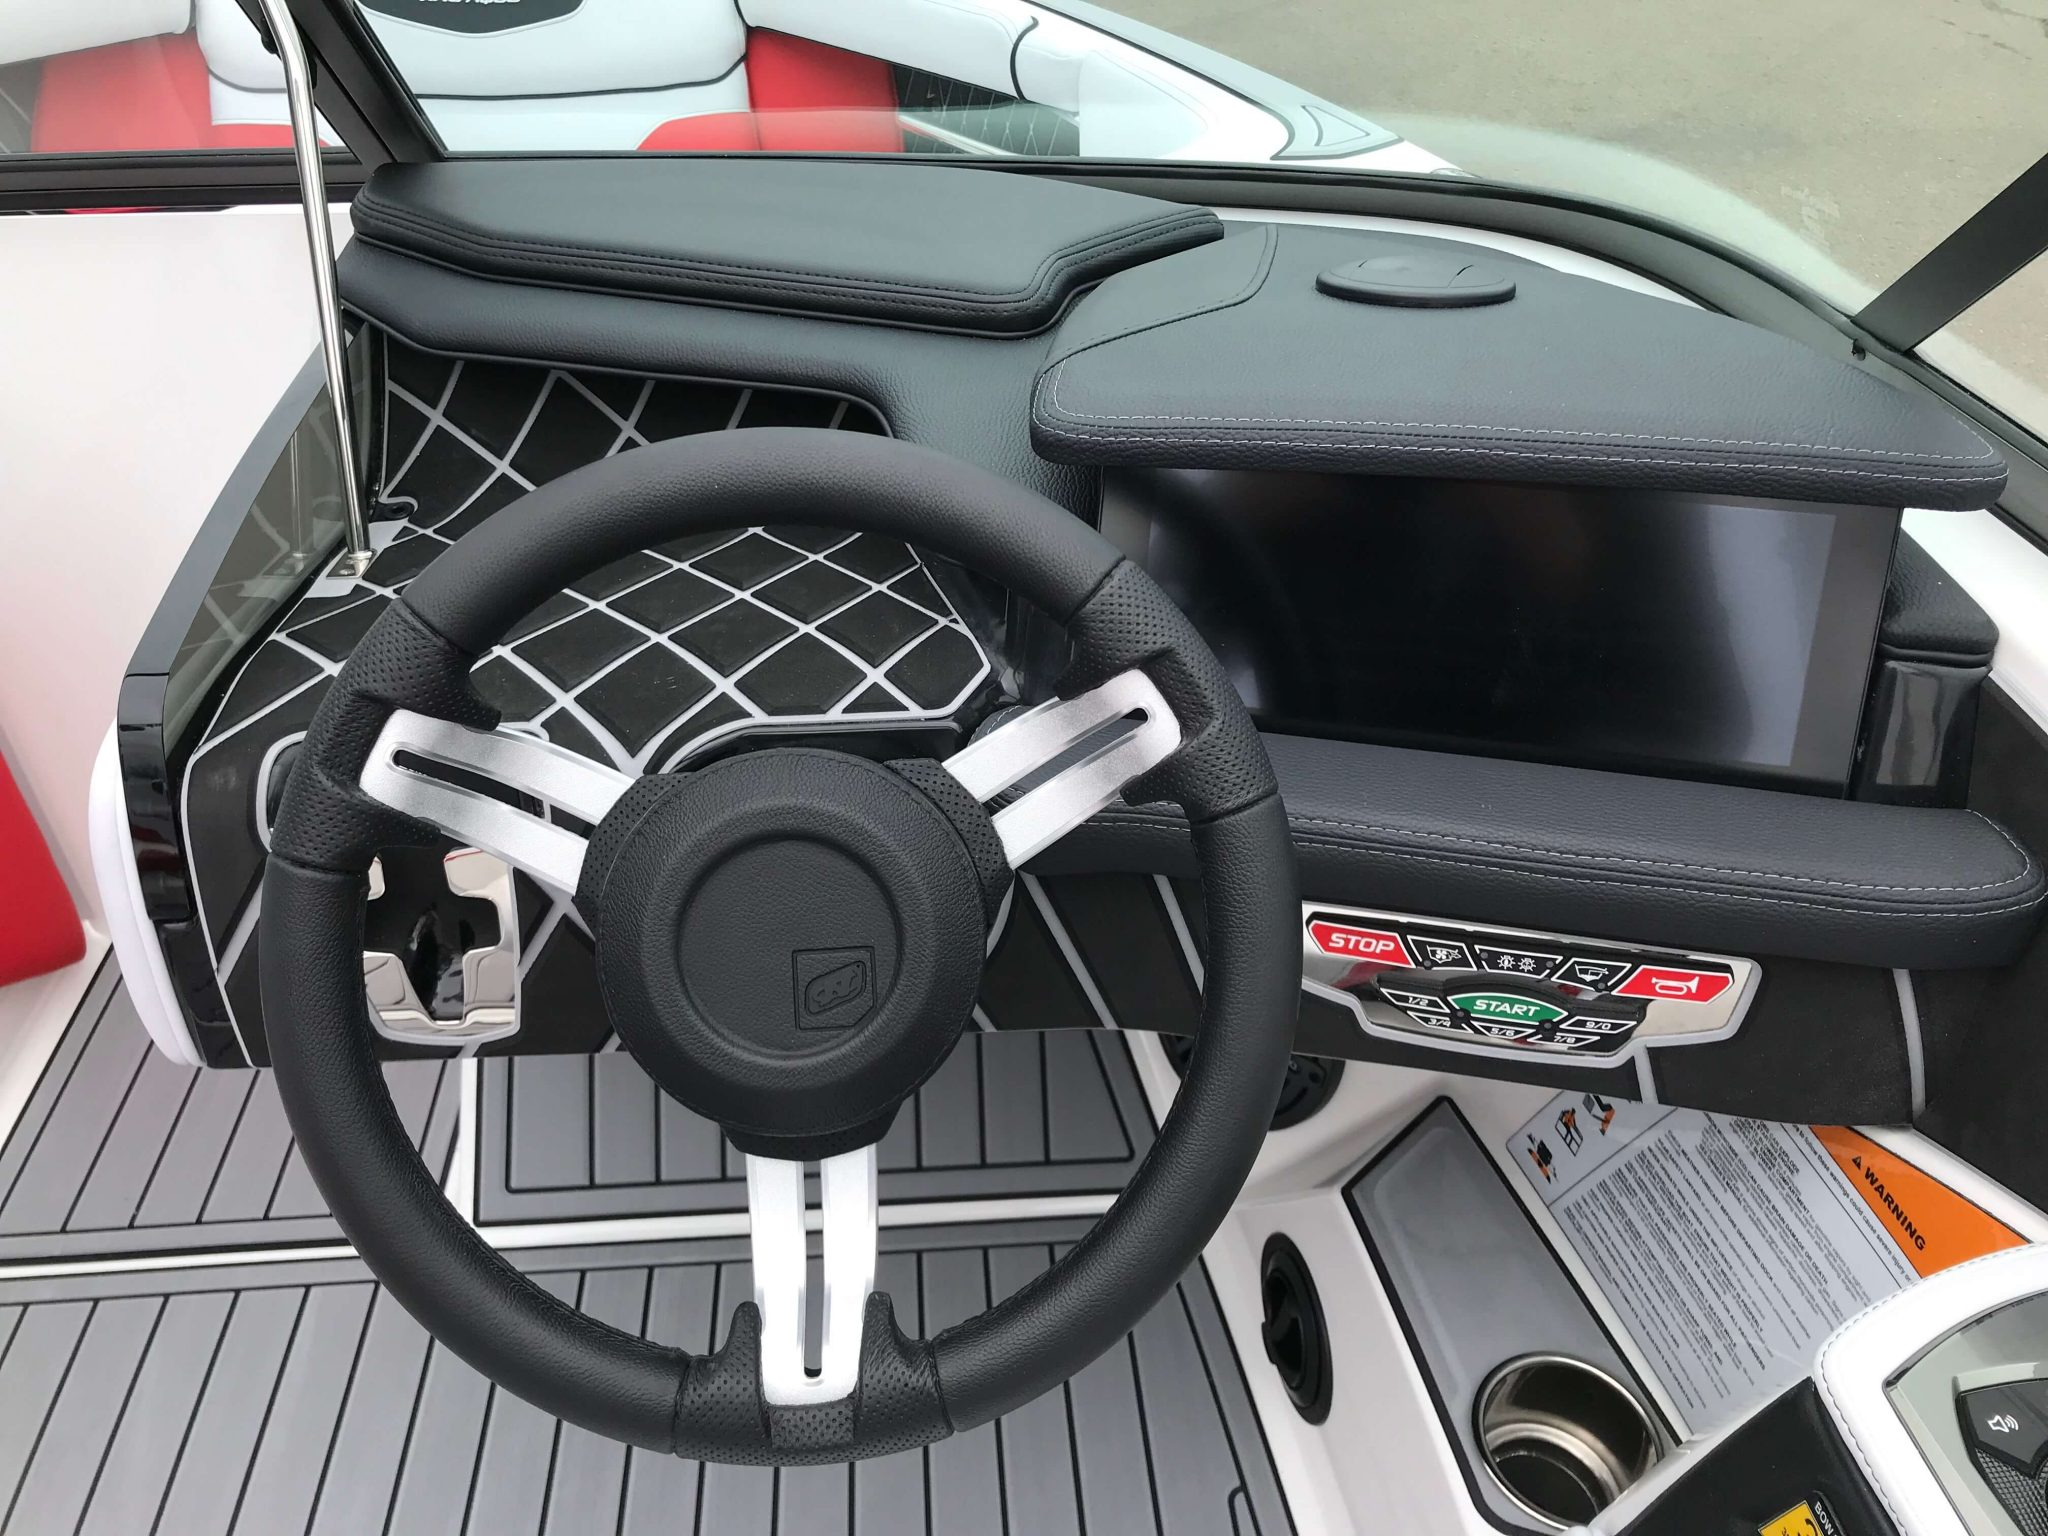 2019 Nautique GS20 Helm And Dash